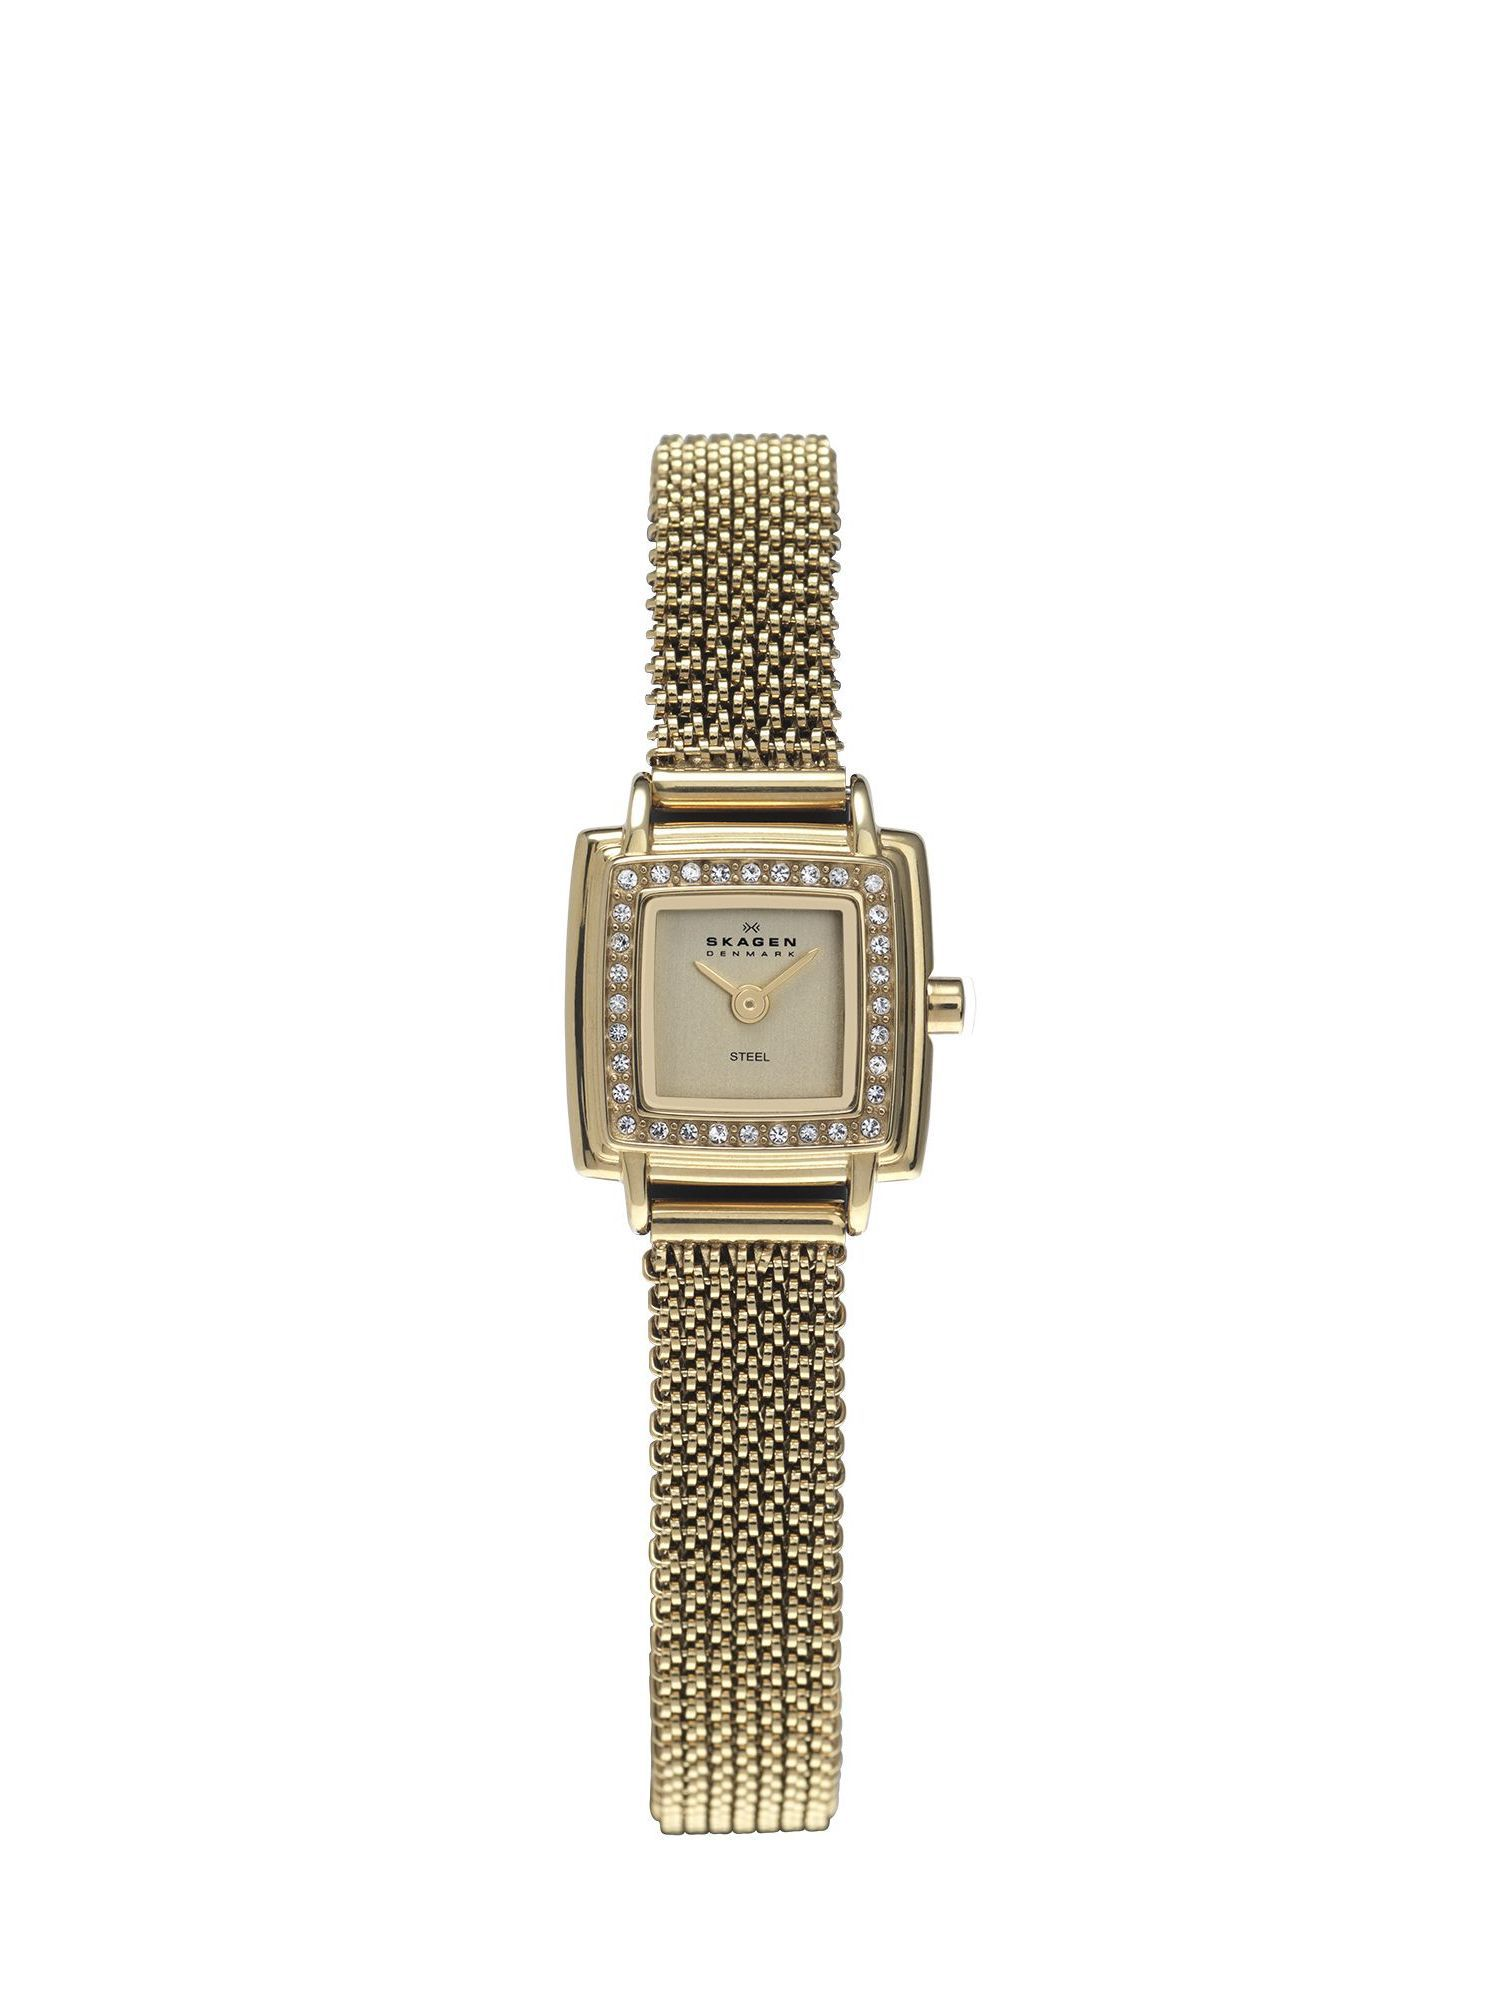 821XSGG1 Skagen Steel Gold Mesh Ladies Watch